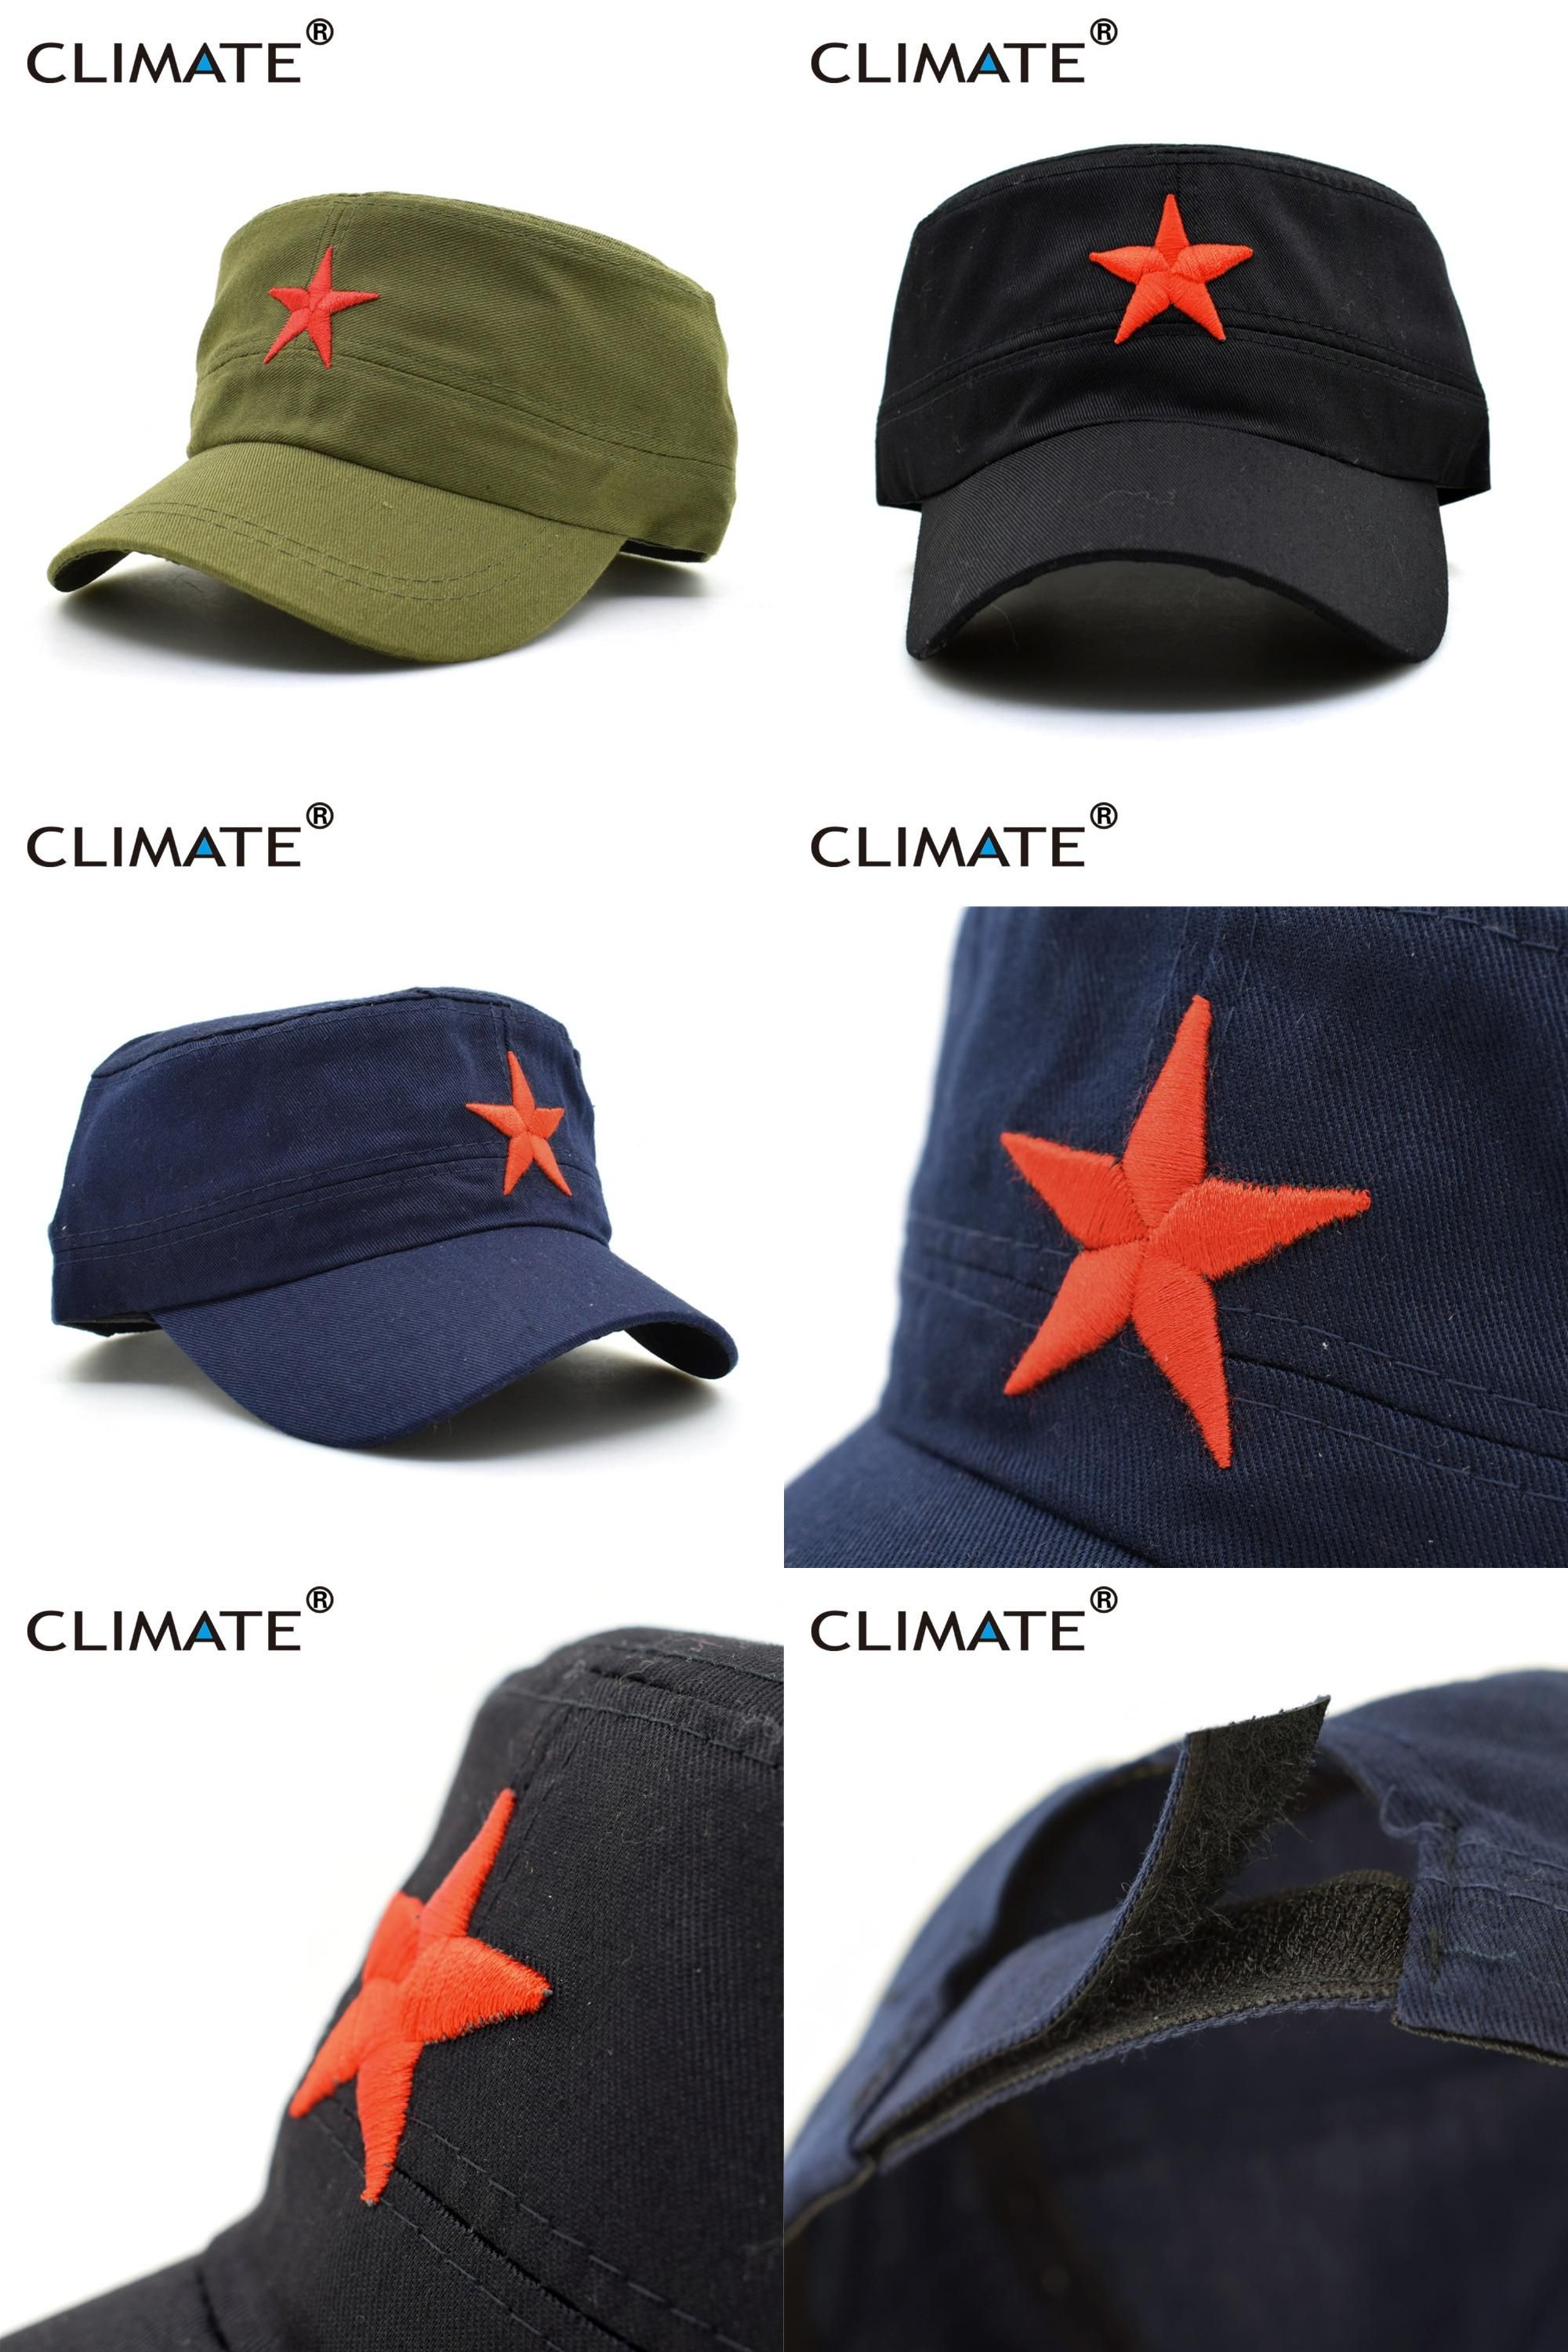 64702c8a3689 [Visit to Buy] CLIMATE 2017 Men Solid Red Star Army Cool Flat Top Caps  China Communist Party Men International Brigades Army Flat Top Hat Caps #  ...